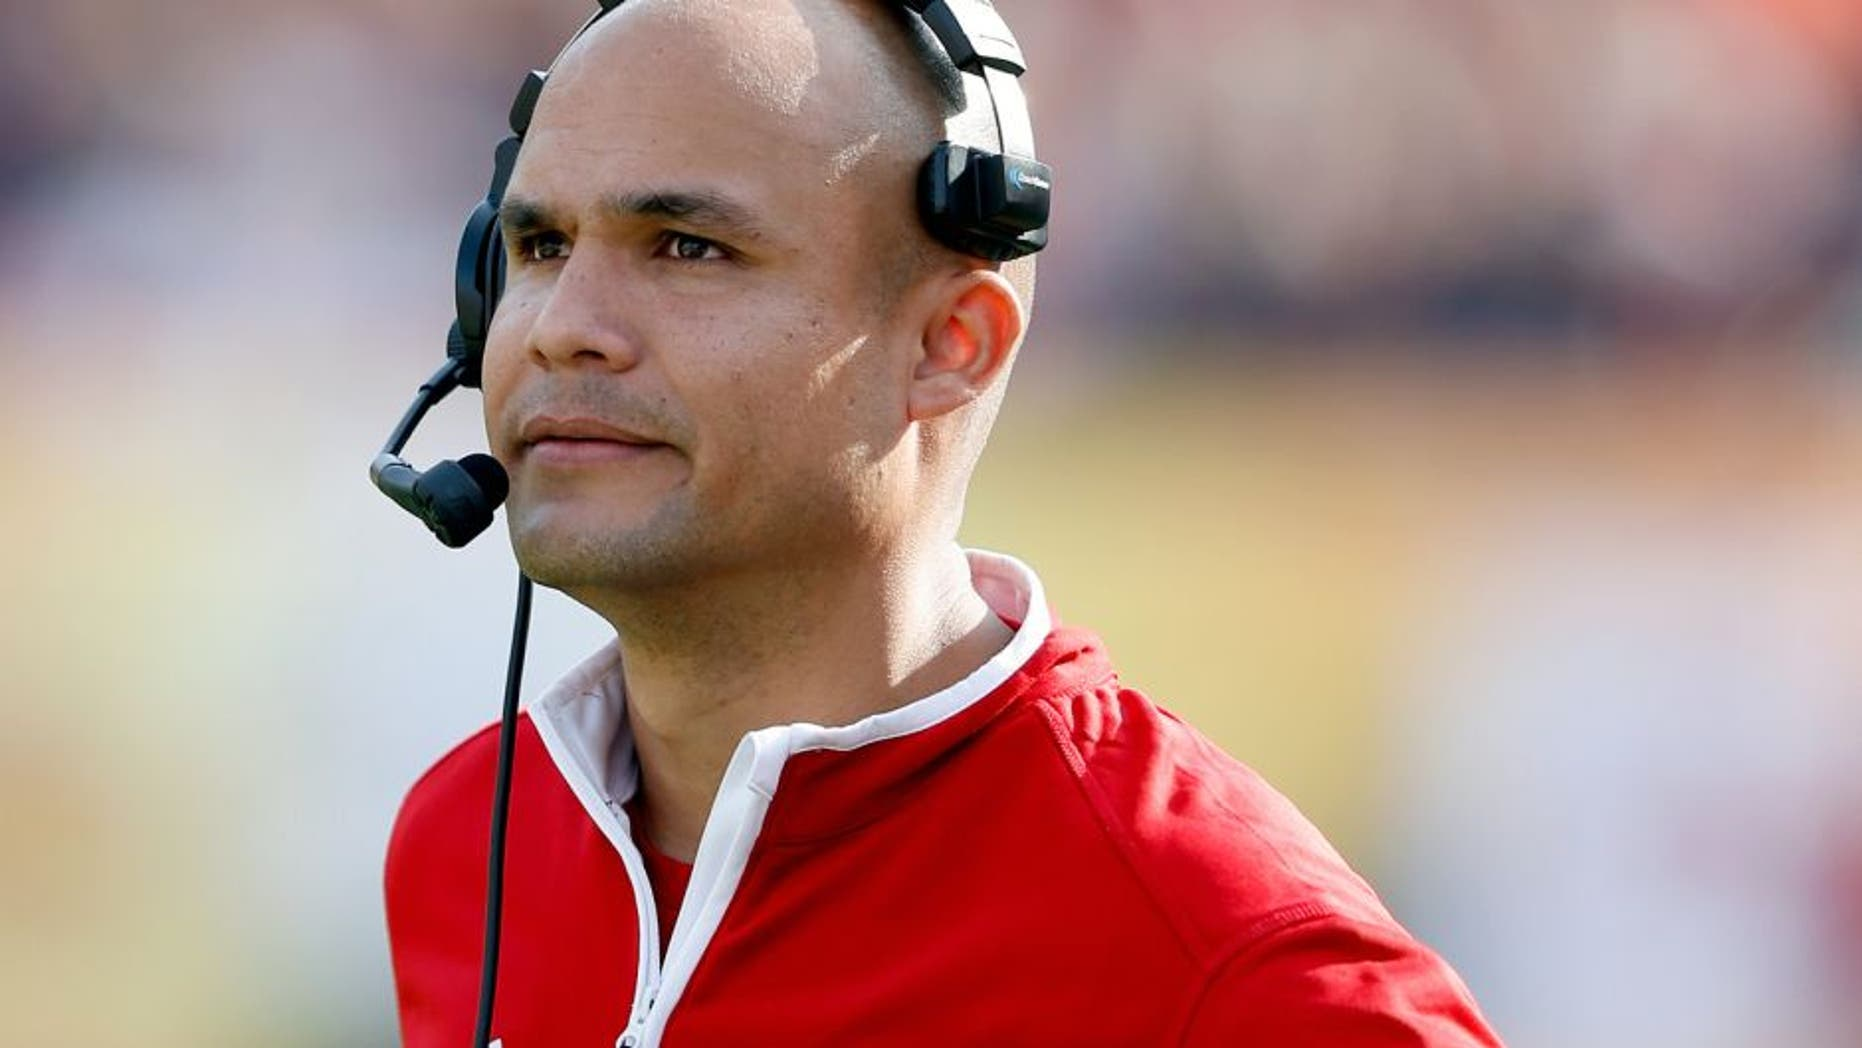 TAMPA, FL - JANUARY 1: Defensive coordinator Dave Aranda of the Wisconsin Badgers looks on against the Auburn Tigers during the Outback Bowl at Raymond James Stadium on January 1, 2015 in Tampa, Florida. Wisconsin defeated Auburn 34-31 in overtime. (Photo by Joe Robbins/Getty Images)